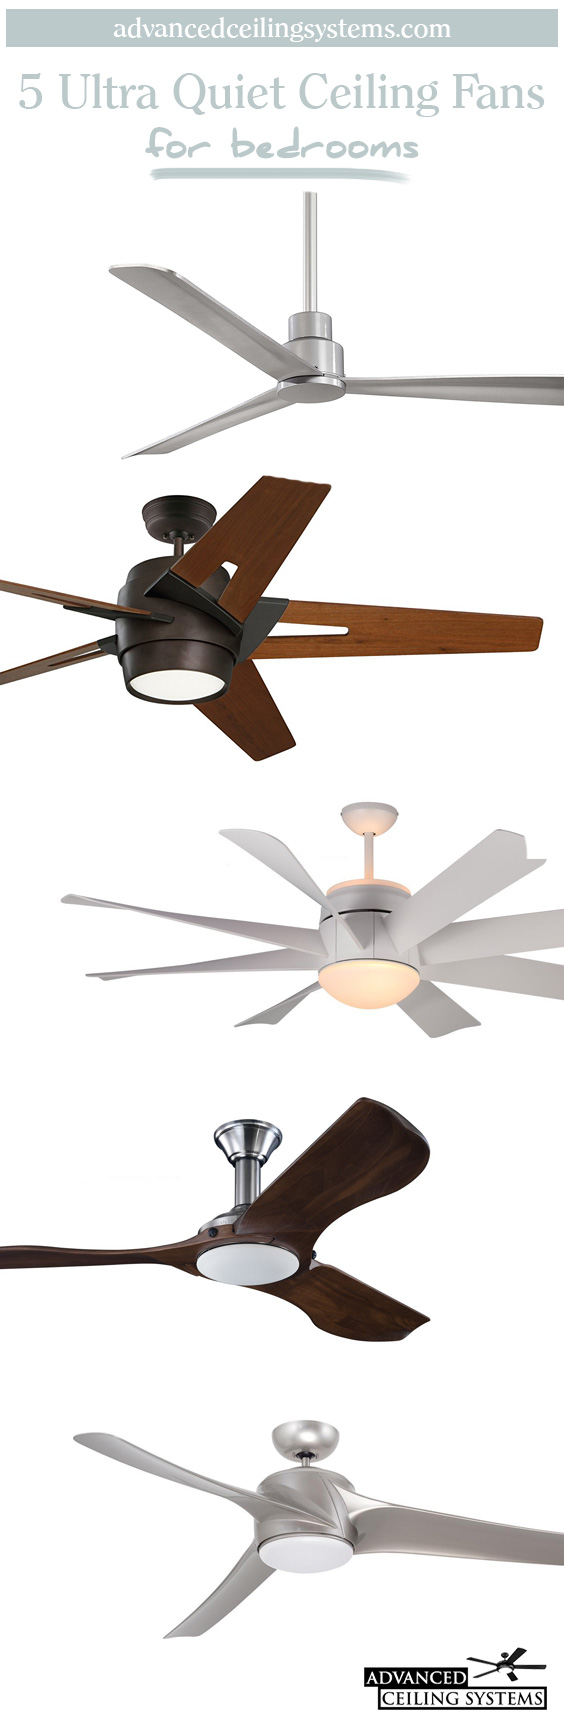 5 Quietest Ceiling Fans Available Right Now